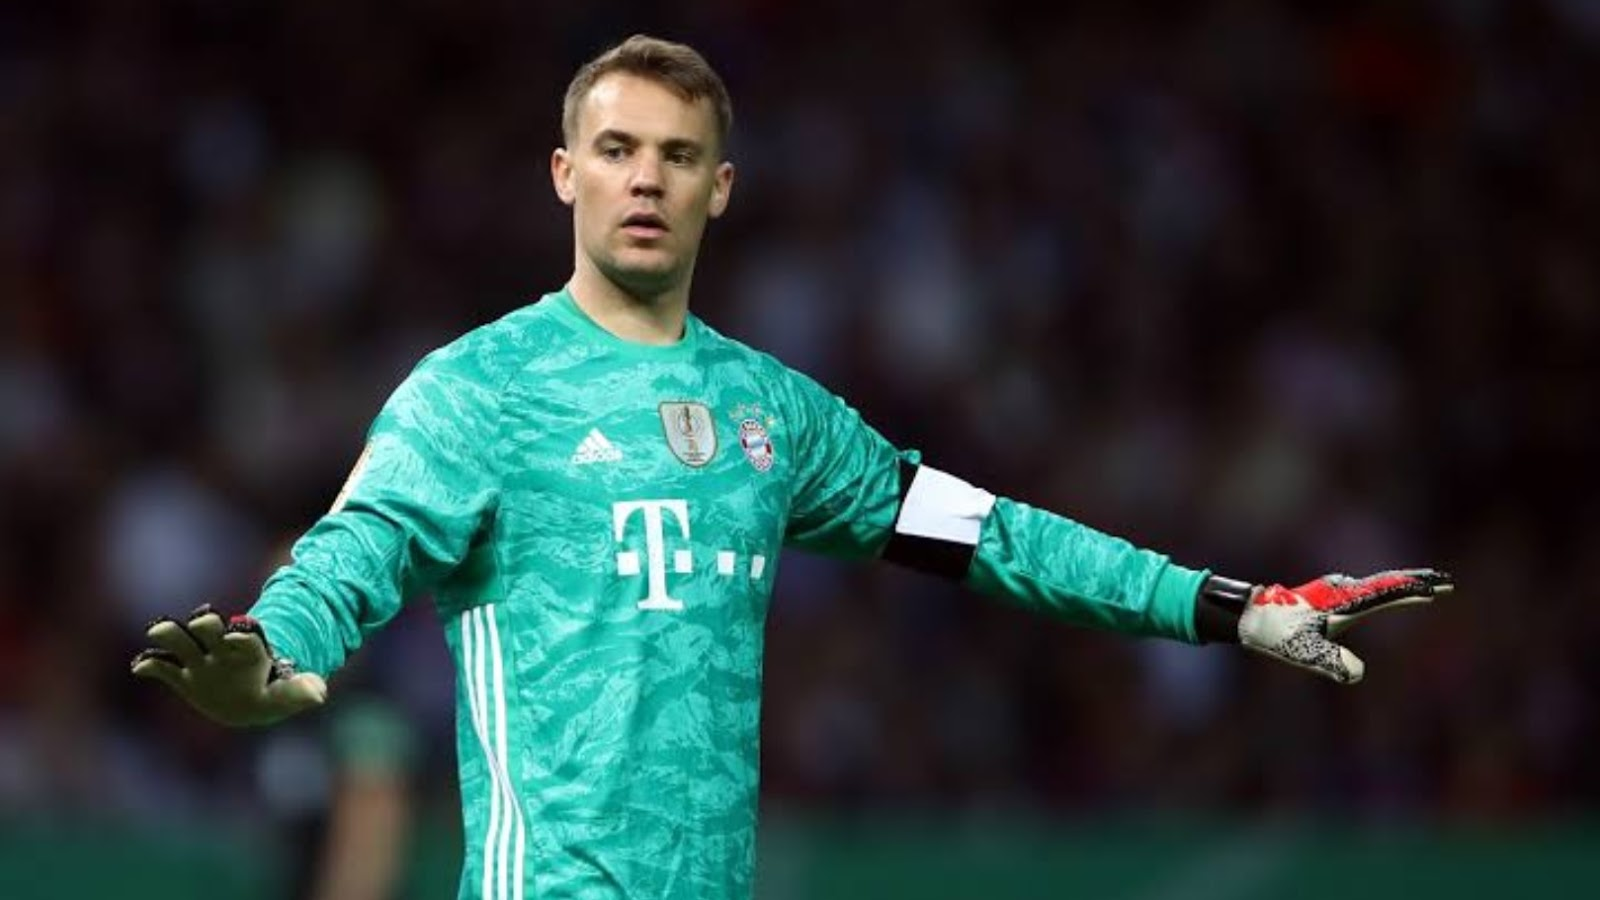 Manuel Neuer insurance policy for hands